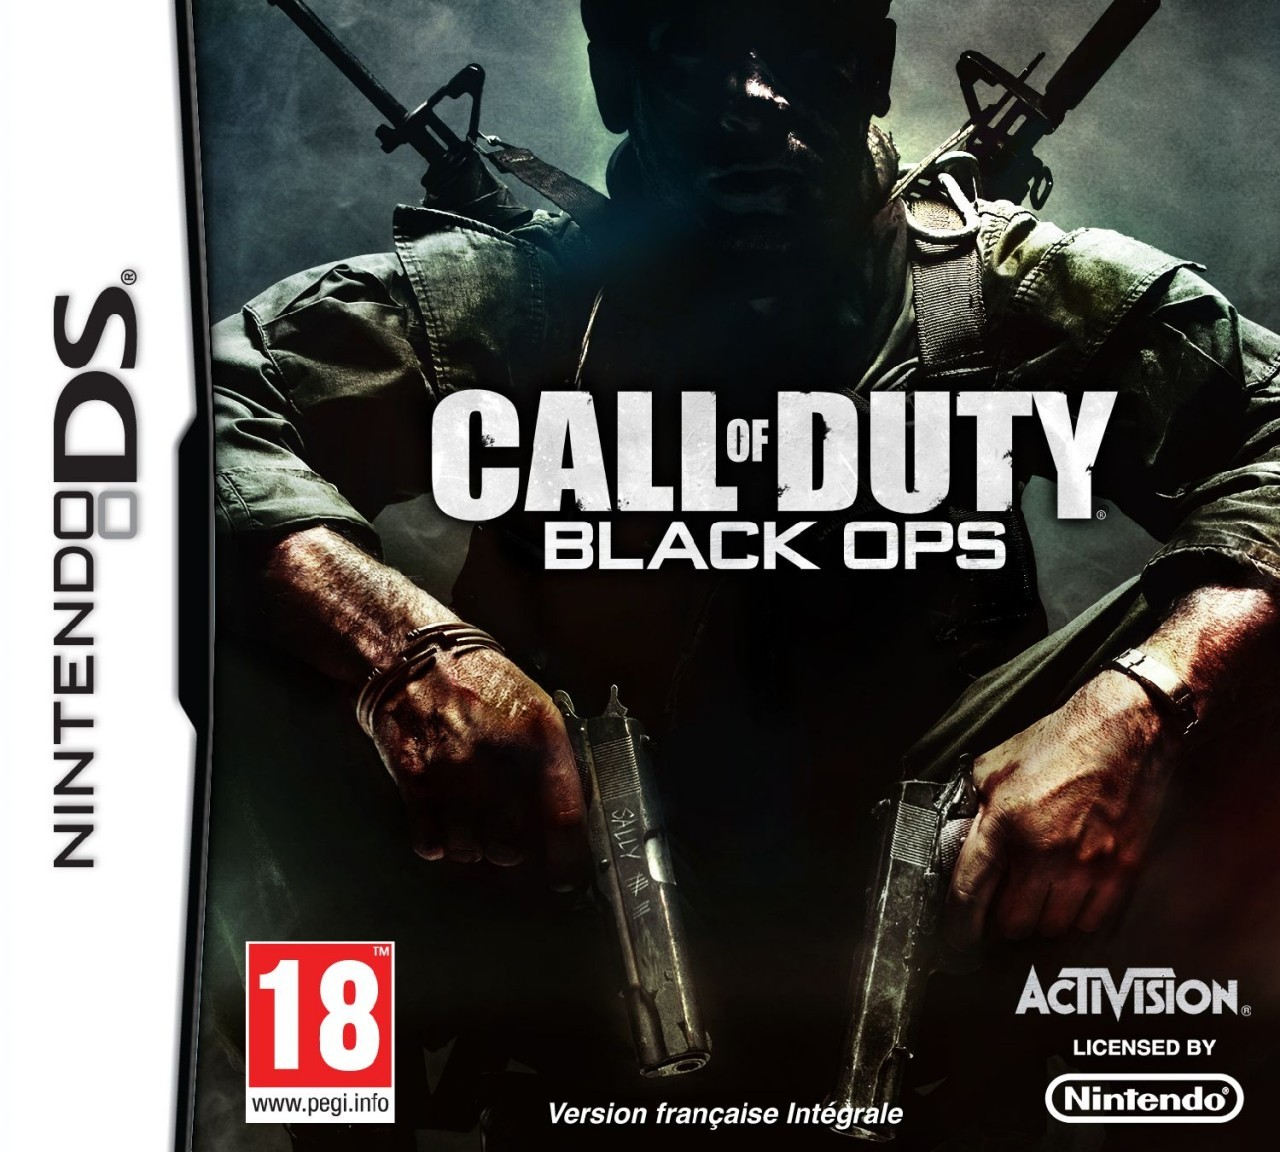 call of duty black ops essay Digital deluxe enhanced edition includes: - call of duty: black ops 4 game - 8,500 call of duty points - digital edition bonus items - digital deluxe bonus items - black ops pass, which includes: --- classified, a zombies experience available at launch --- 4 additional all-new zombies experiences --- 12 multiplayer maps --- 4 exclusive.